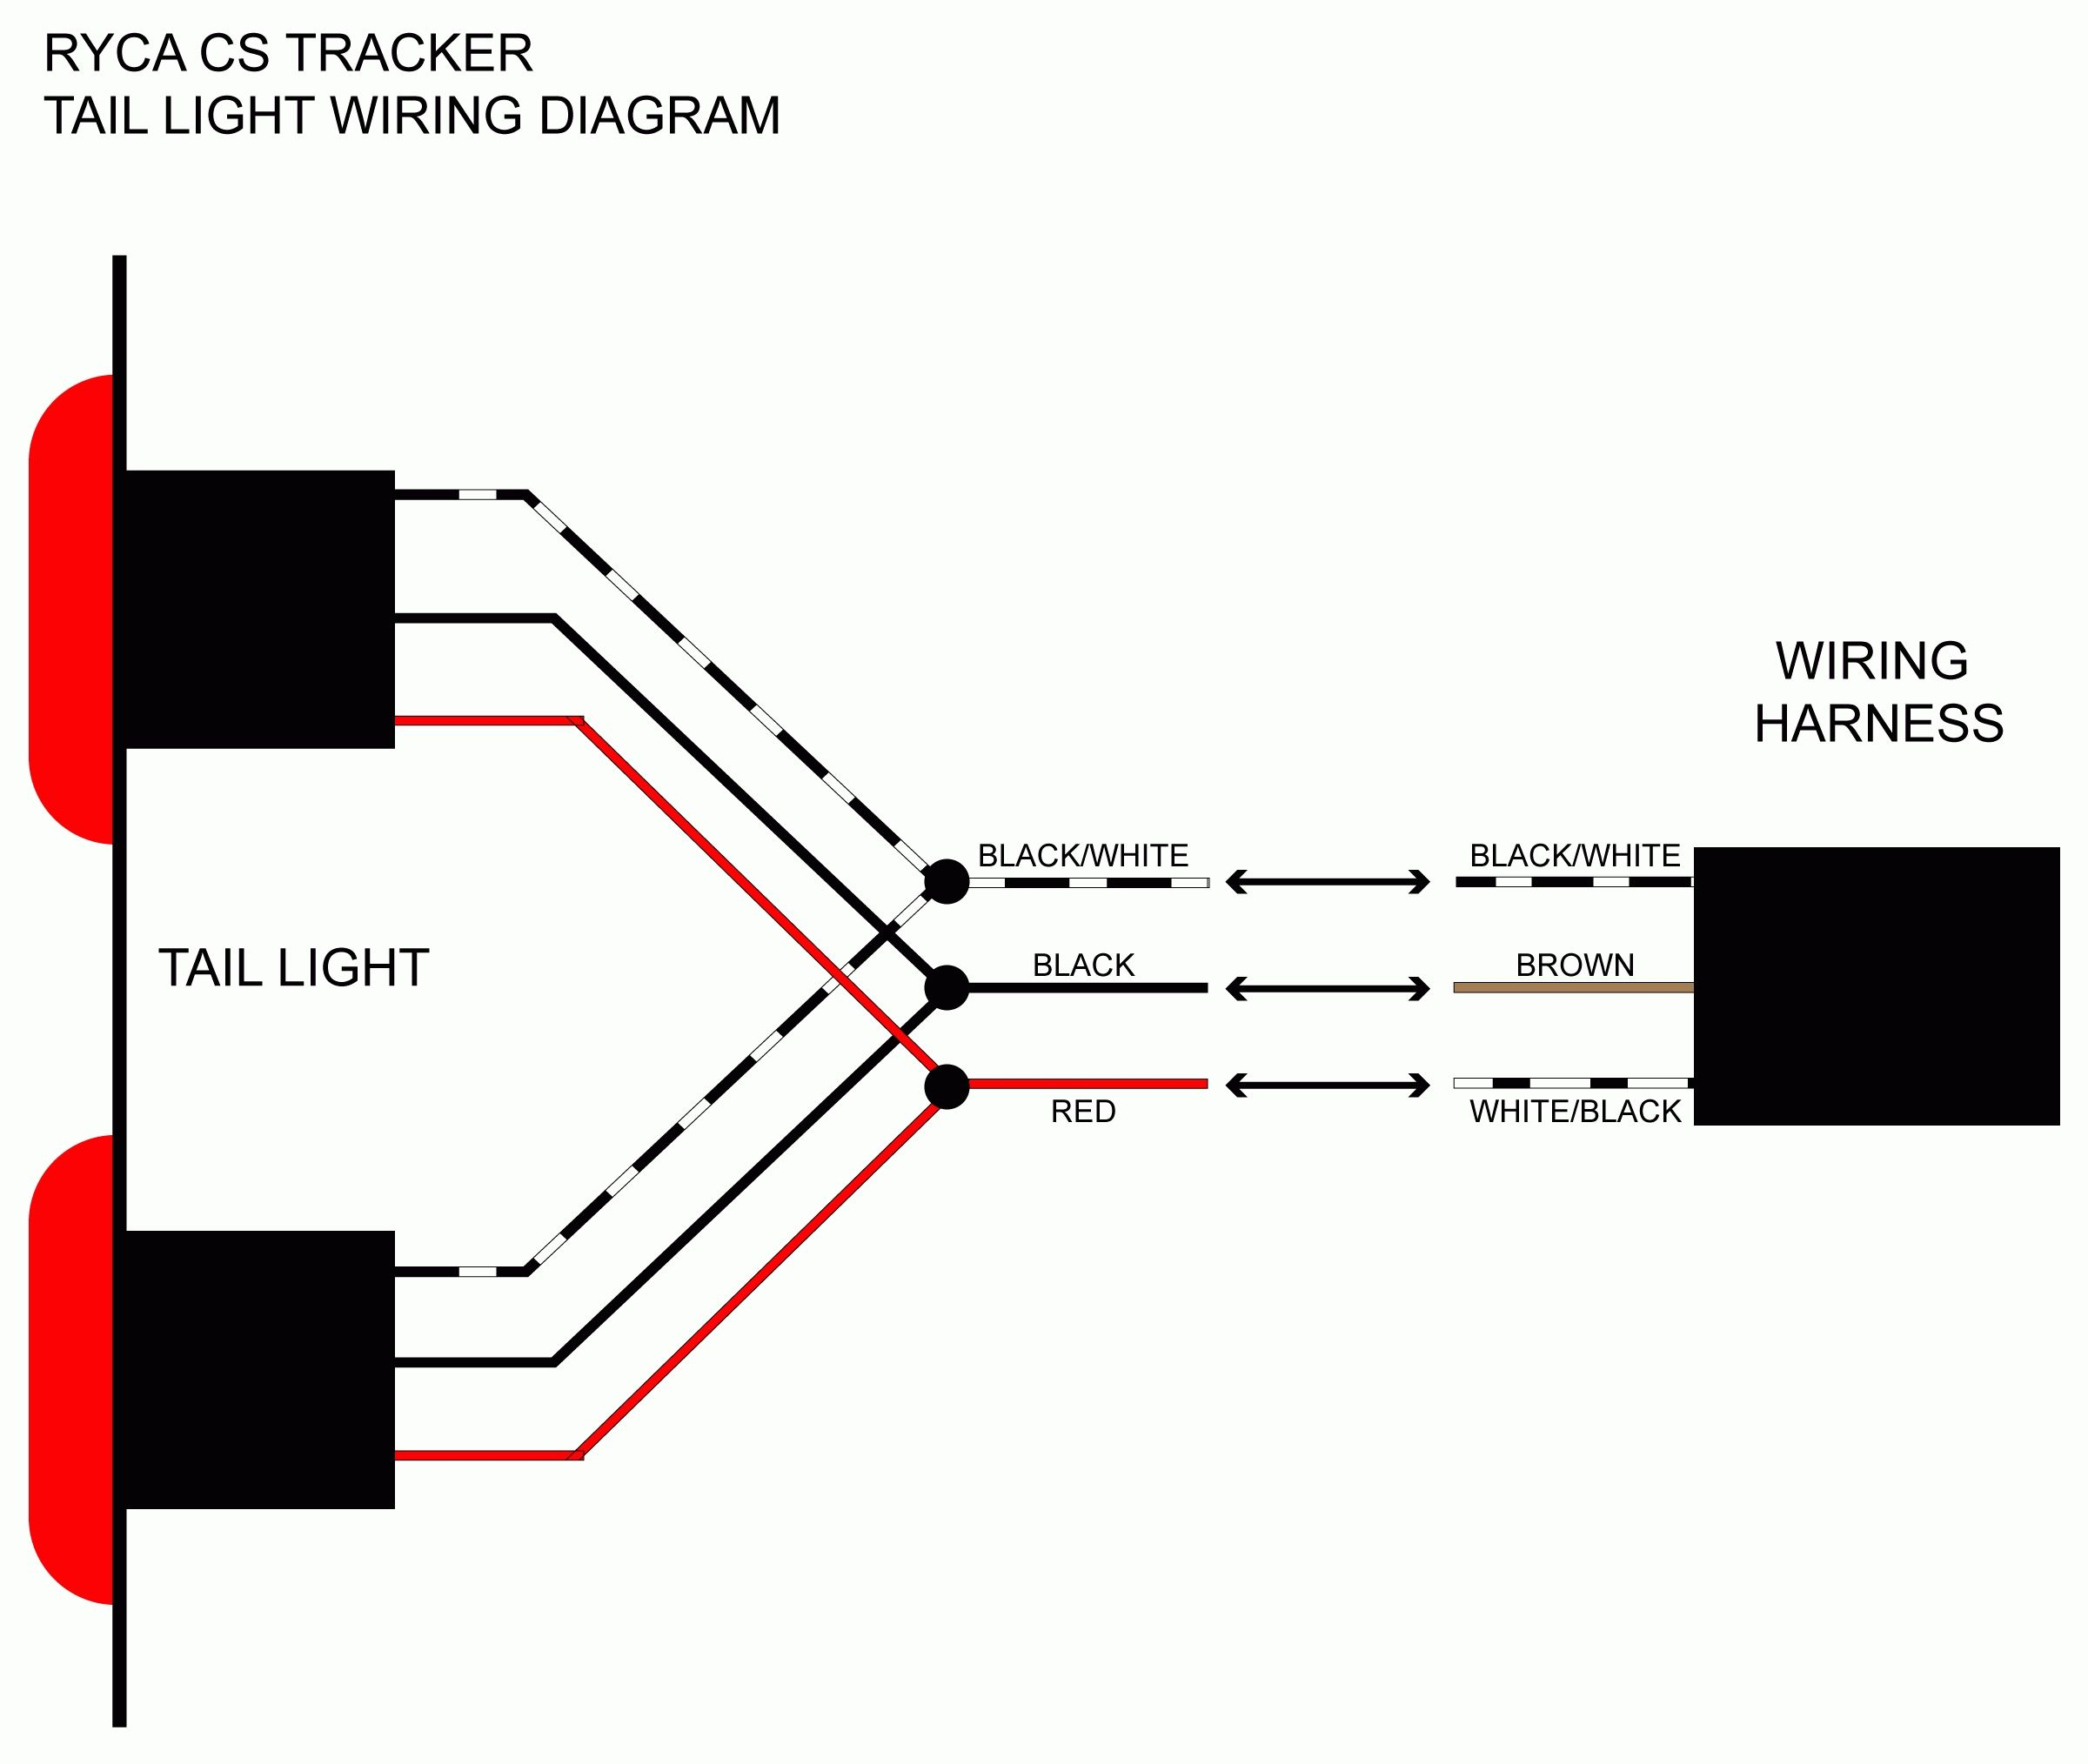 hight resolution of wiring diagram for led tail lights fitfathers me unusual light and wiring for jeep tj led tail lights led wiring for tail lights